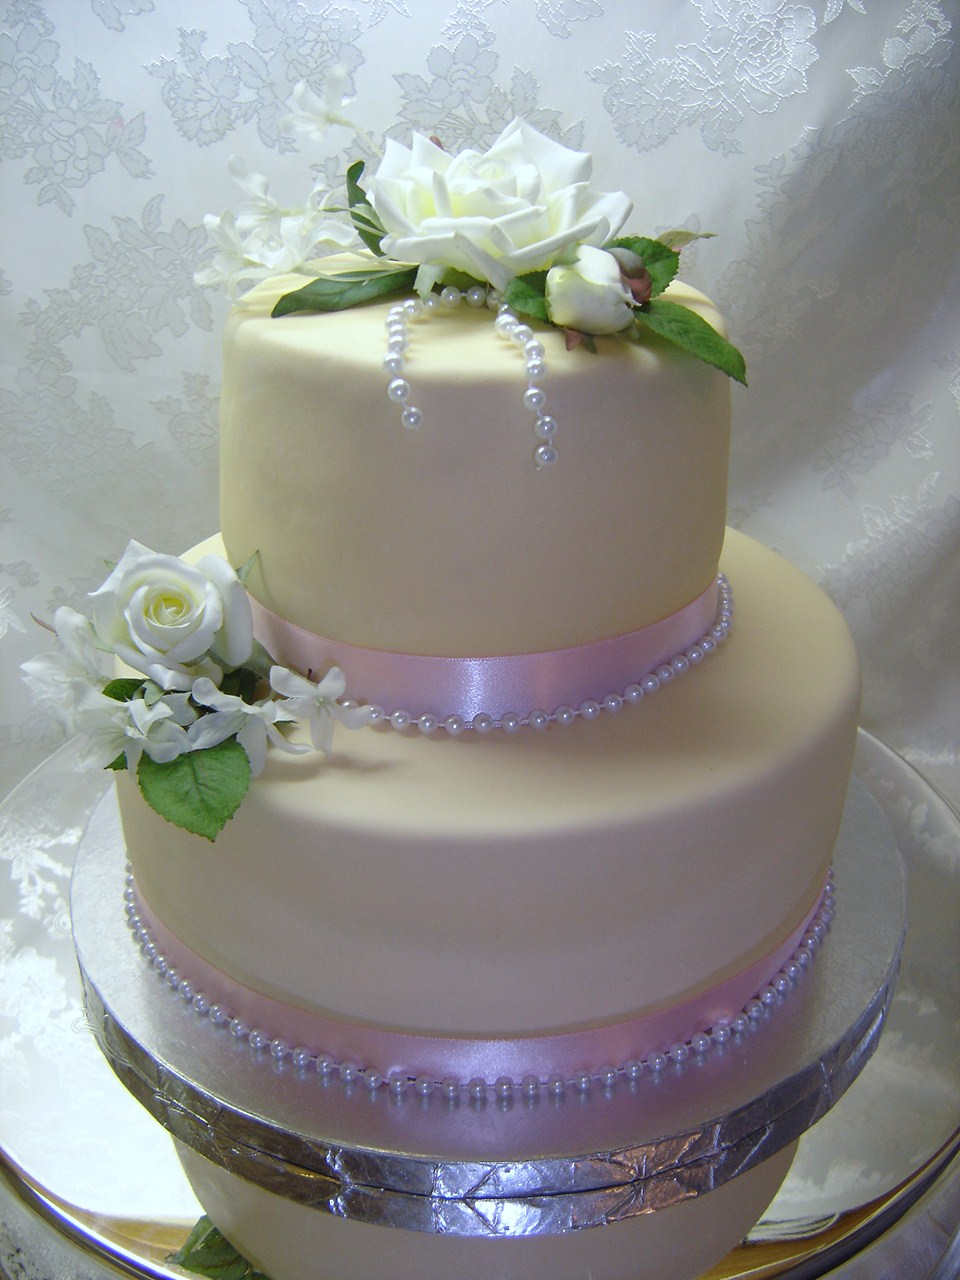 Cake Pictures Small : 2 tier small fondant wedding cake - Natalia s Cakes